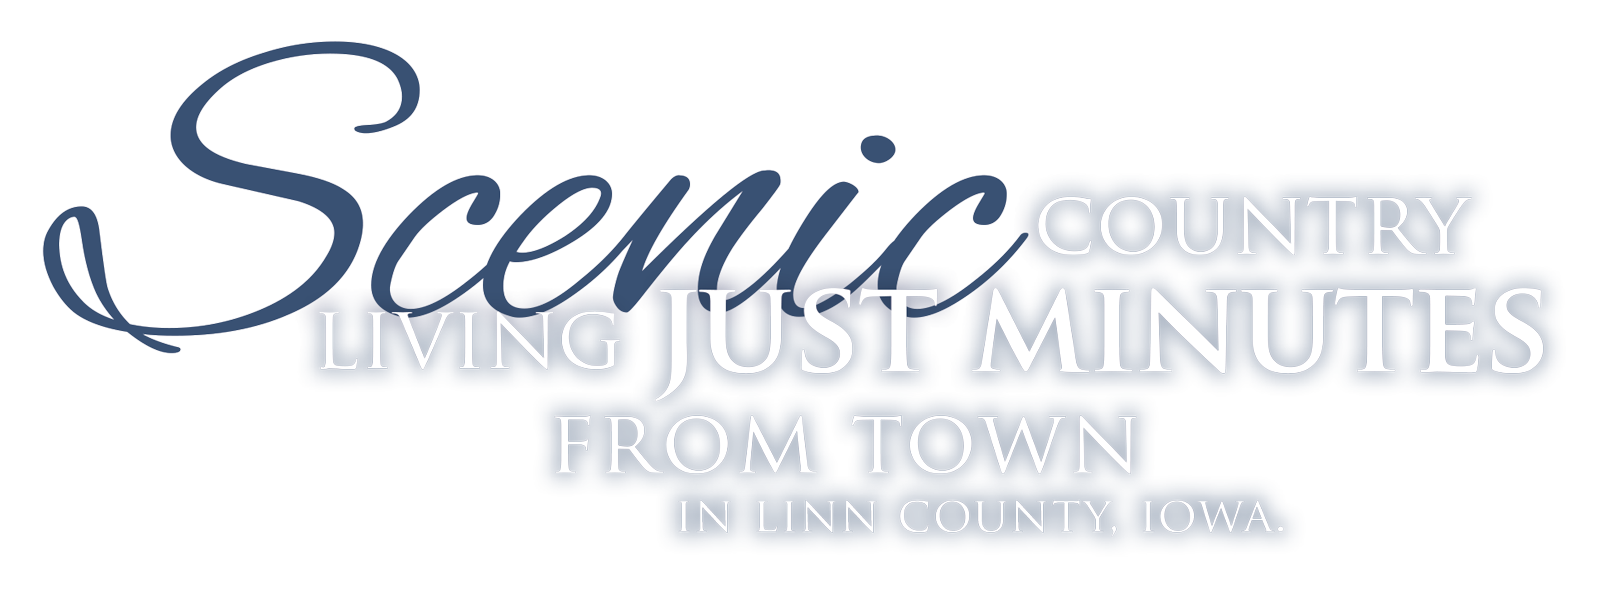 Scenic country living just minutes from town in Linn County, Iowa